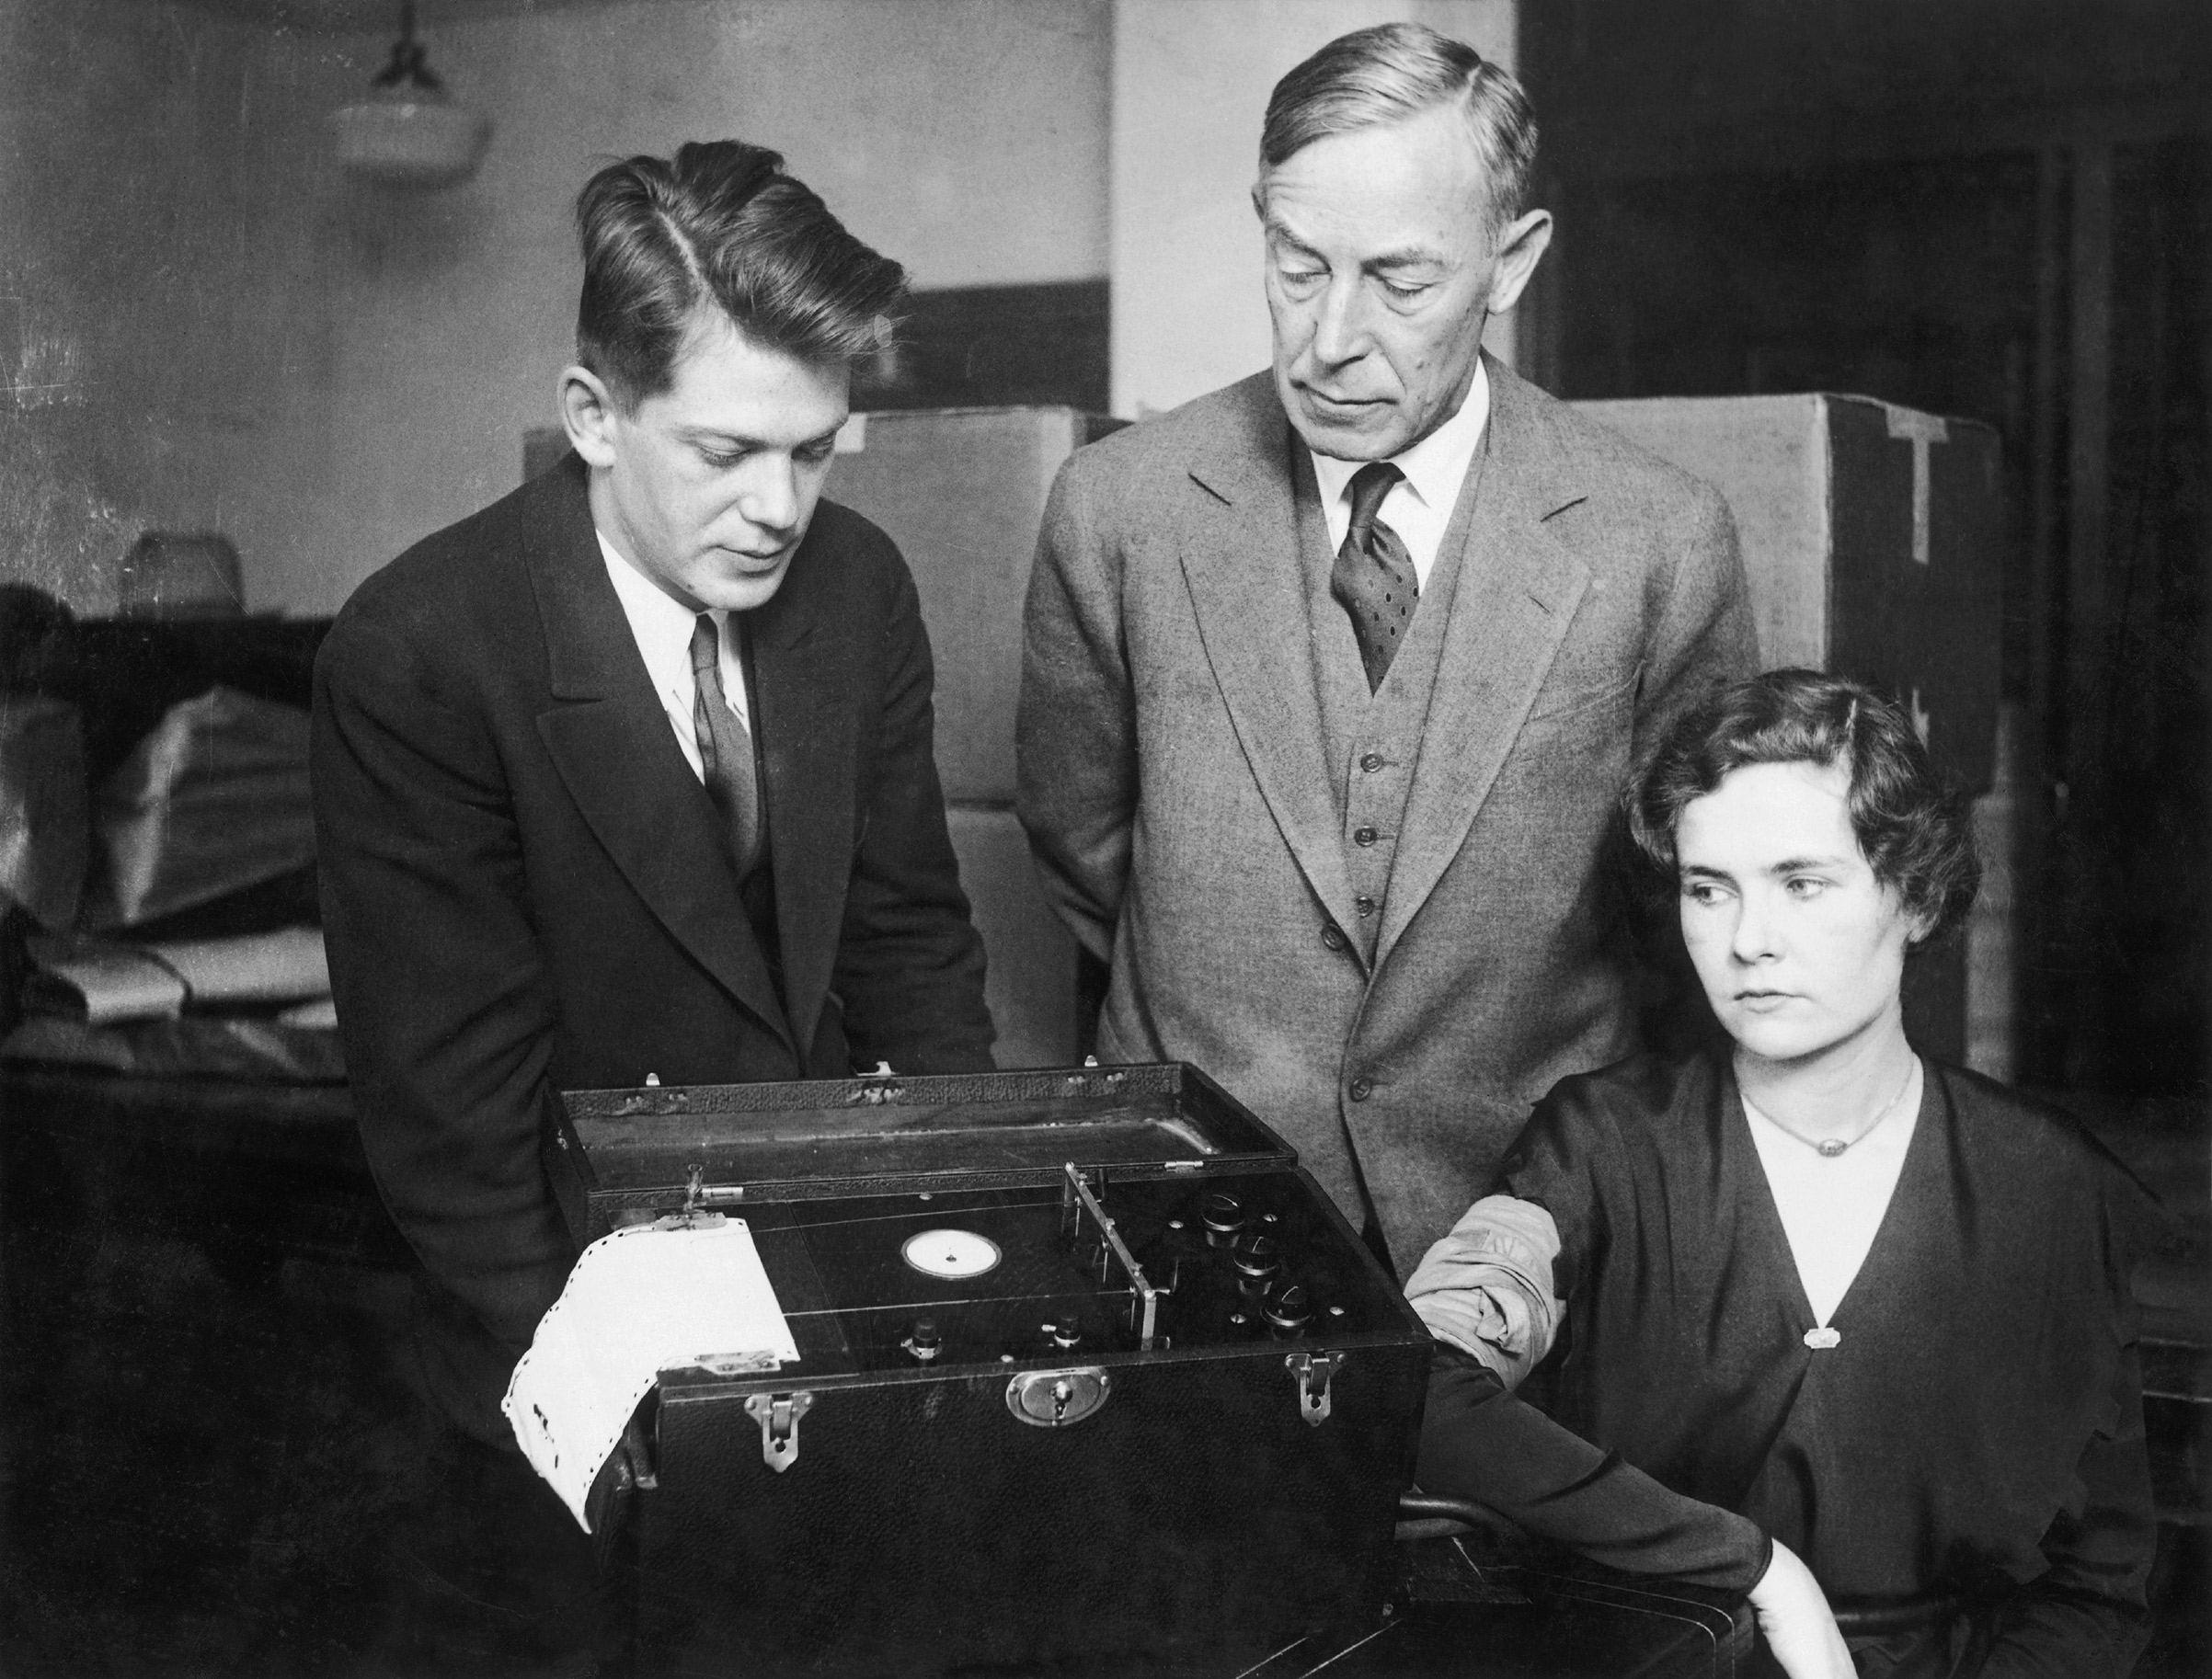 Leonarde Keeler (left) testing his polygraph machine on Marjorie Creighton in presence of August Vollmer during a trial in Chicago in 1932.